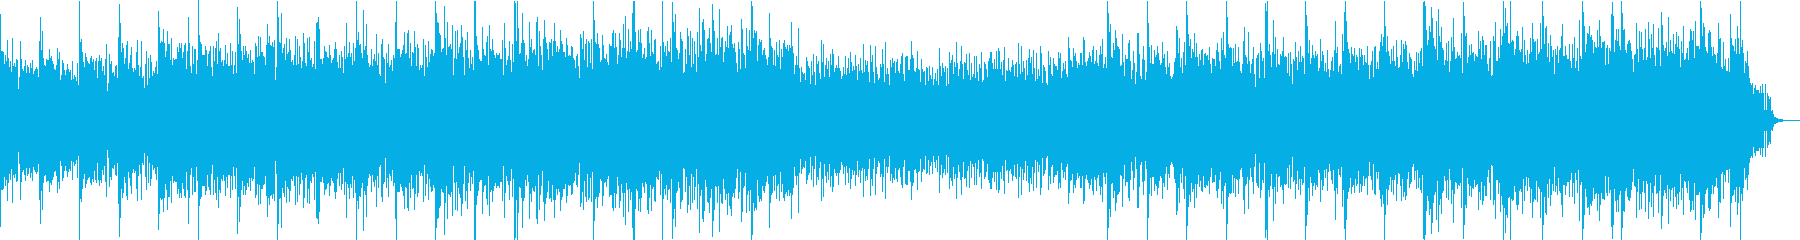 Upbeat, dreamy an...'s reproduced waveform